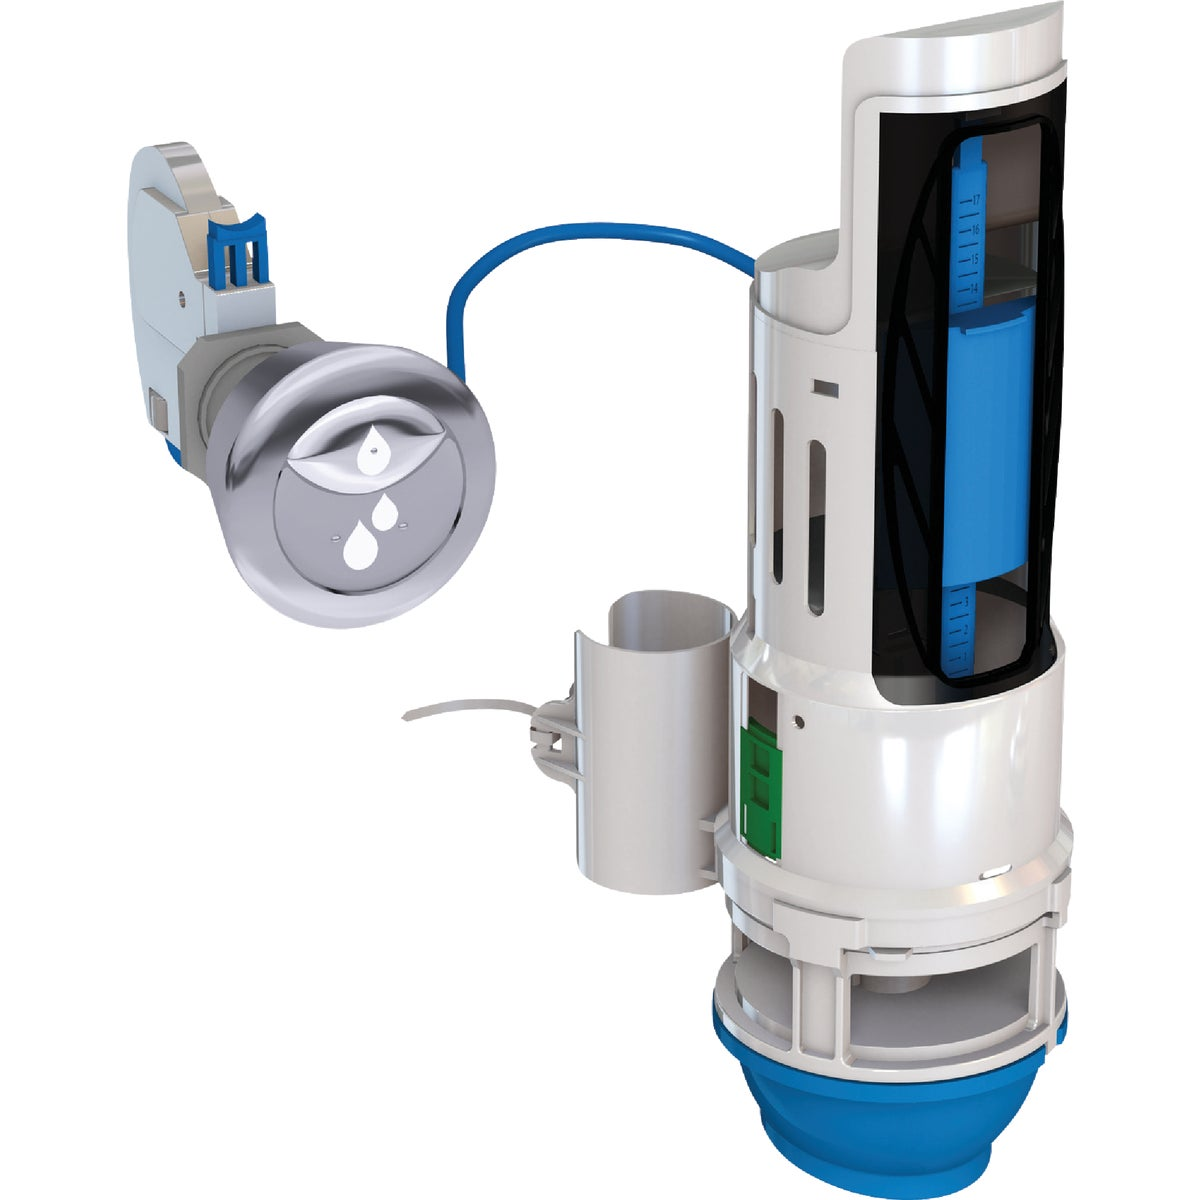 DUAL FLUSH CONVERTER - HYR270 by Danco Perfect Match